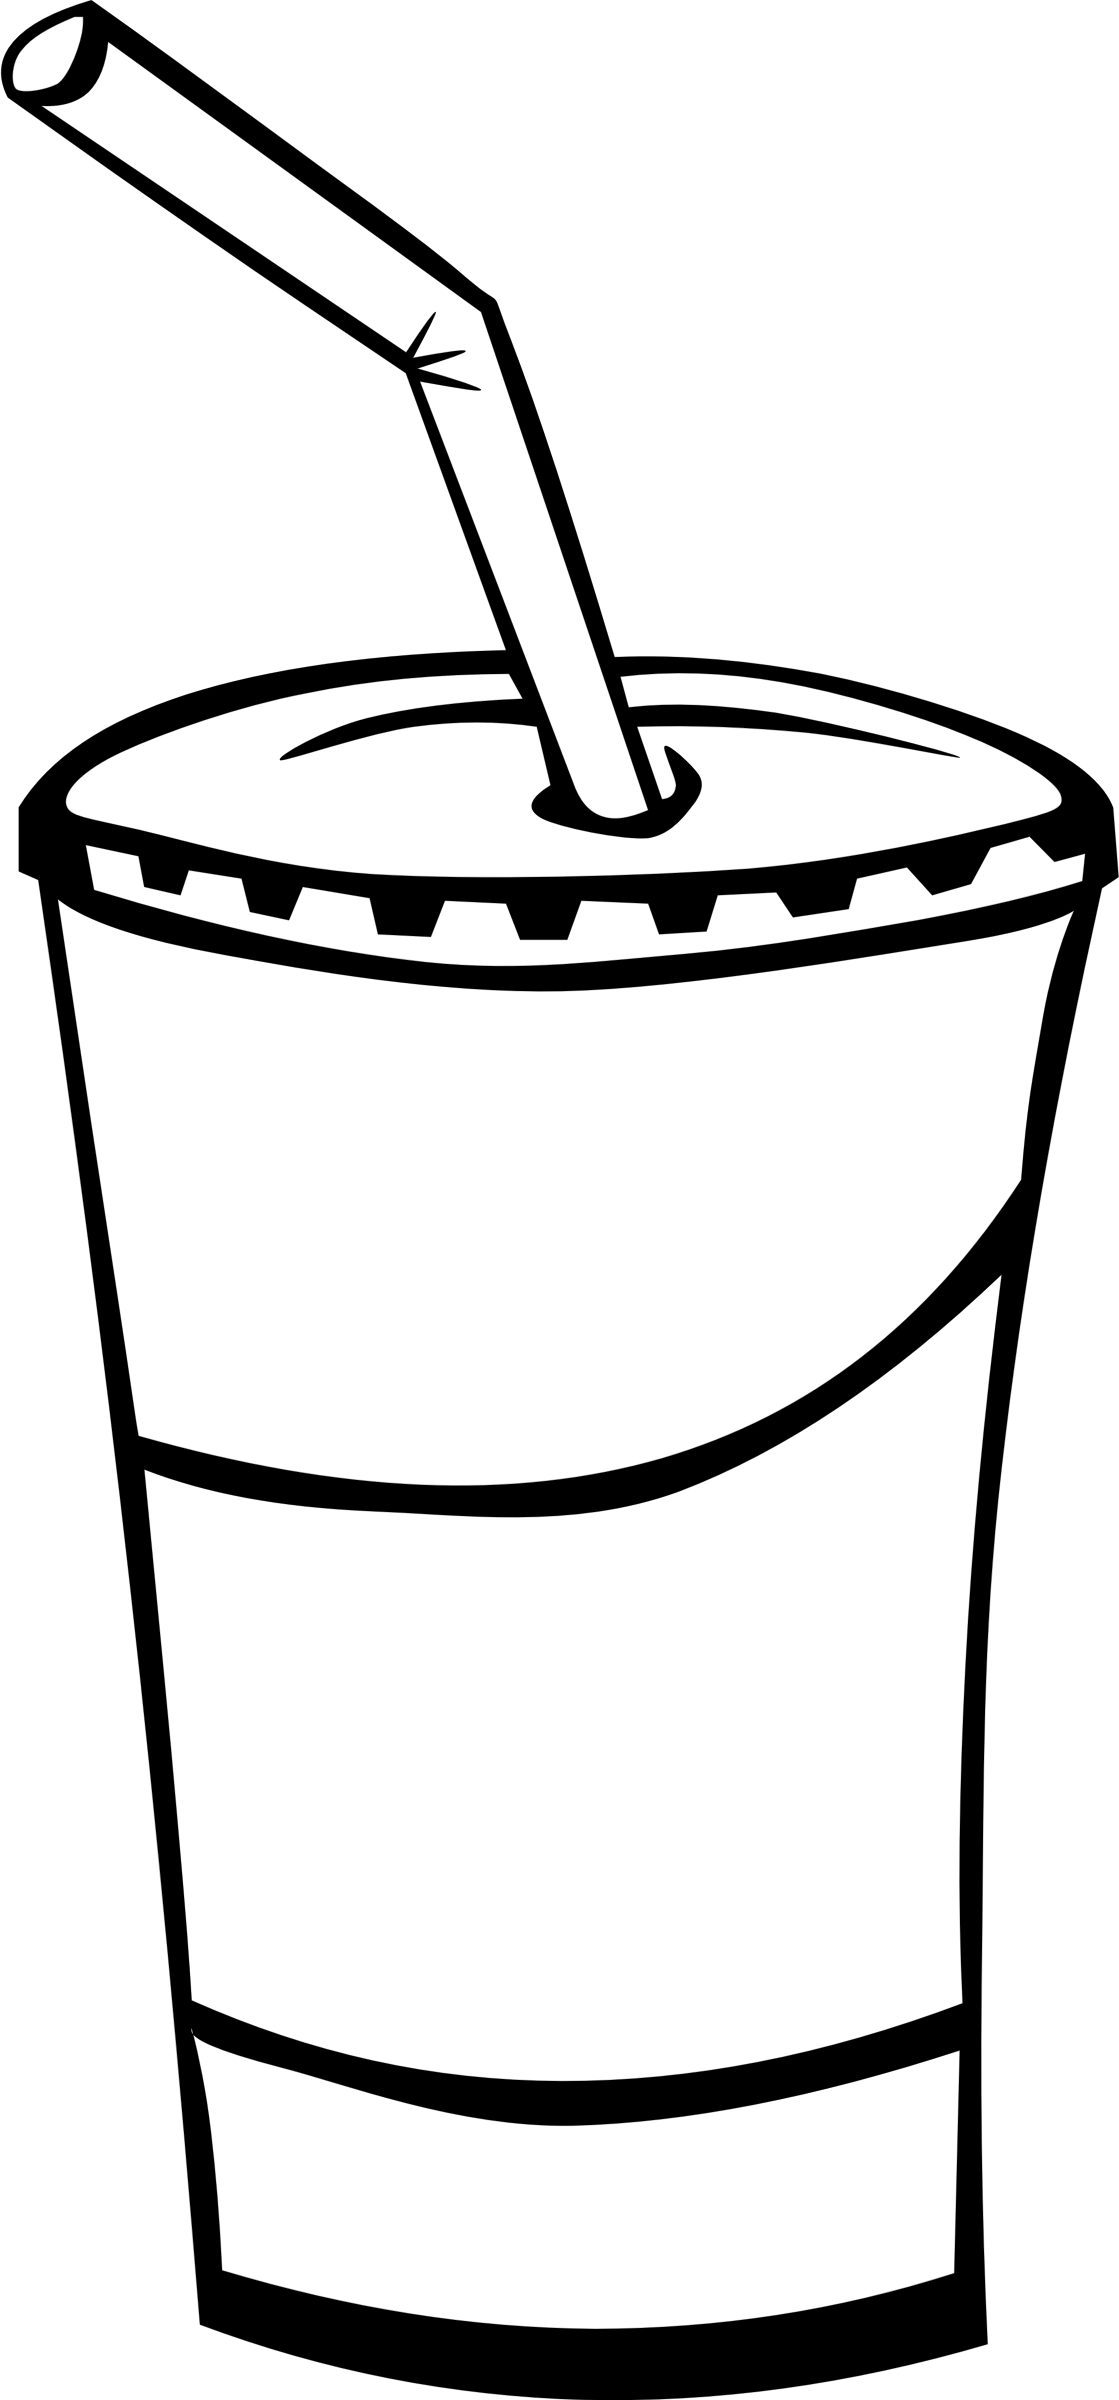 Drink clipart. Fast food drinks soda